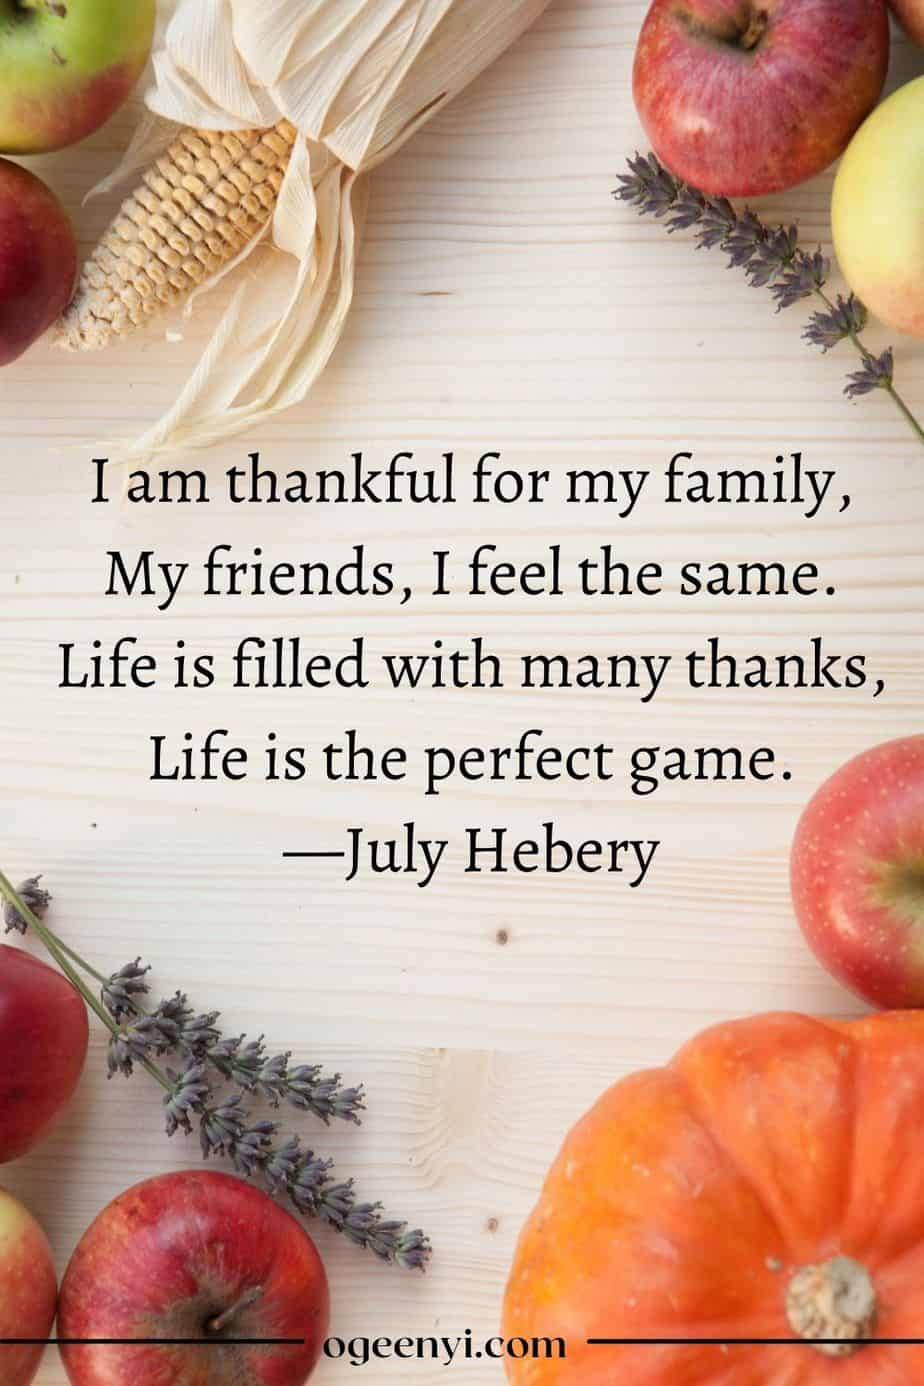 The Best Thanksgiving Prayers For Family And Friends To Say